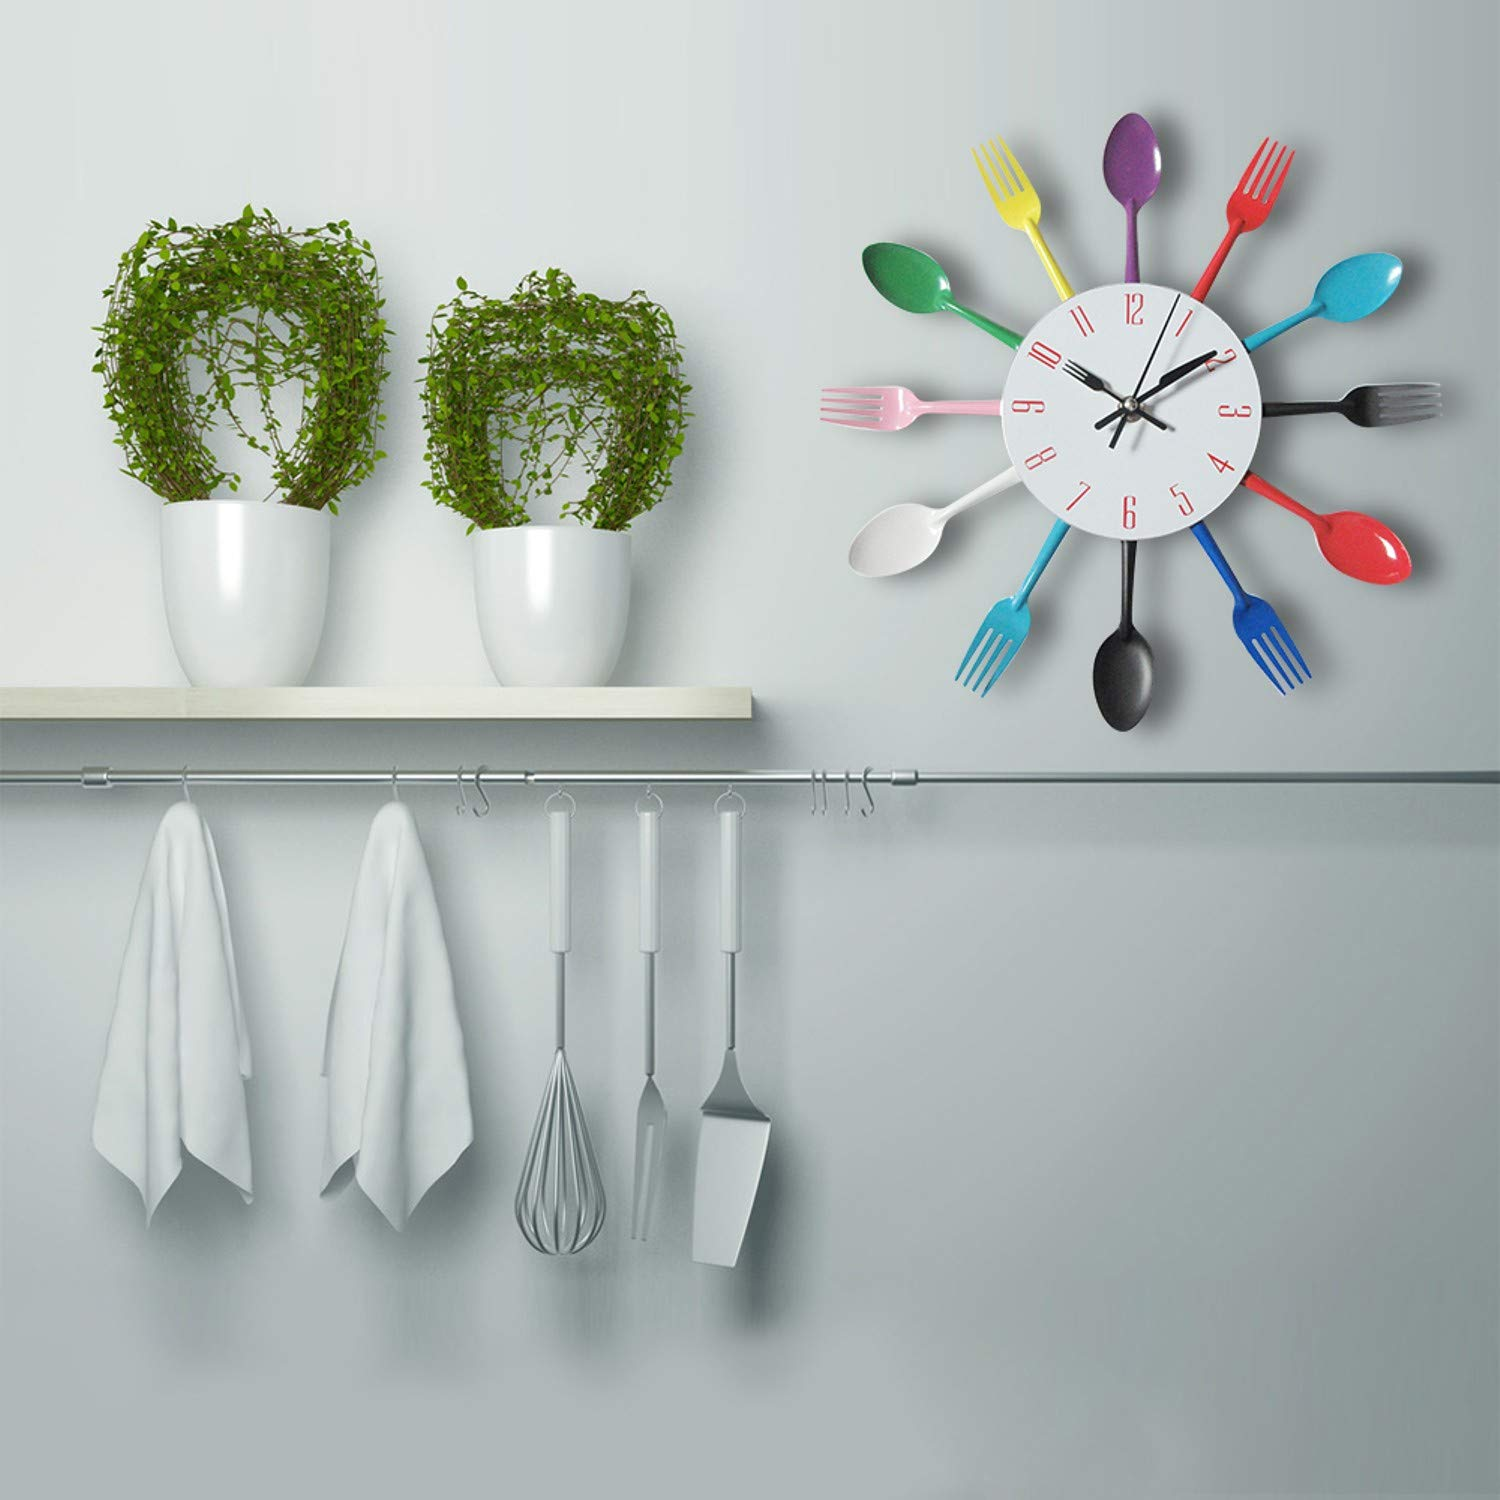 Amazon.com: CHTOP Cutlery Metal Kitchen Wall Clock - Spoon Fork Creative Quartz Wall Mounted Clocks - Modern Design Decorative Horloge Murale (Black): Home ...